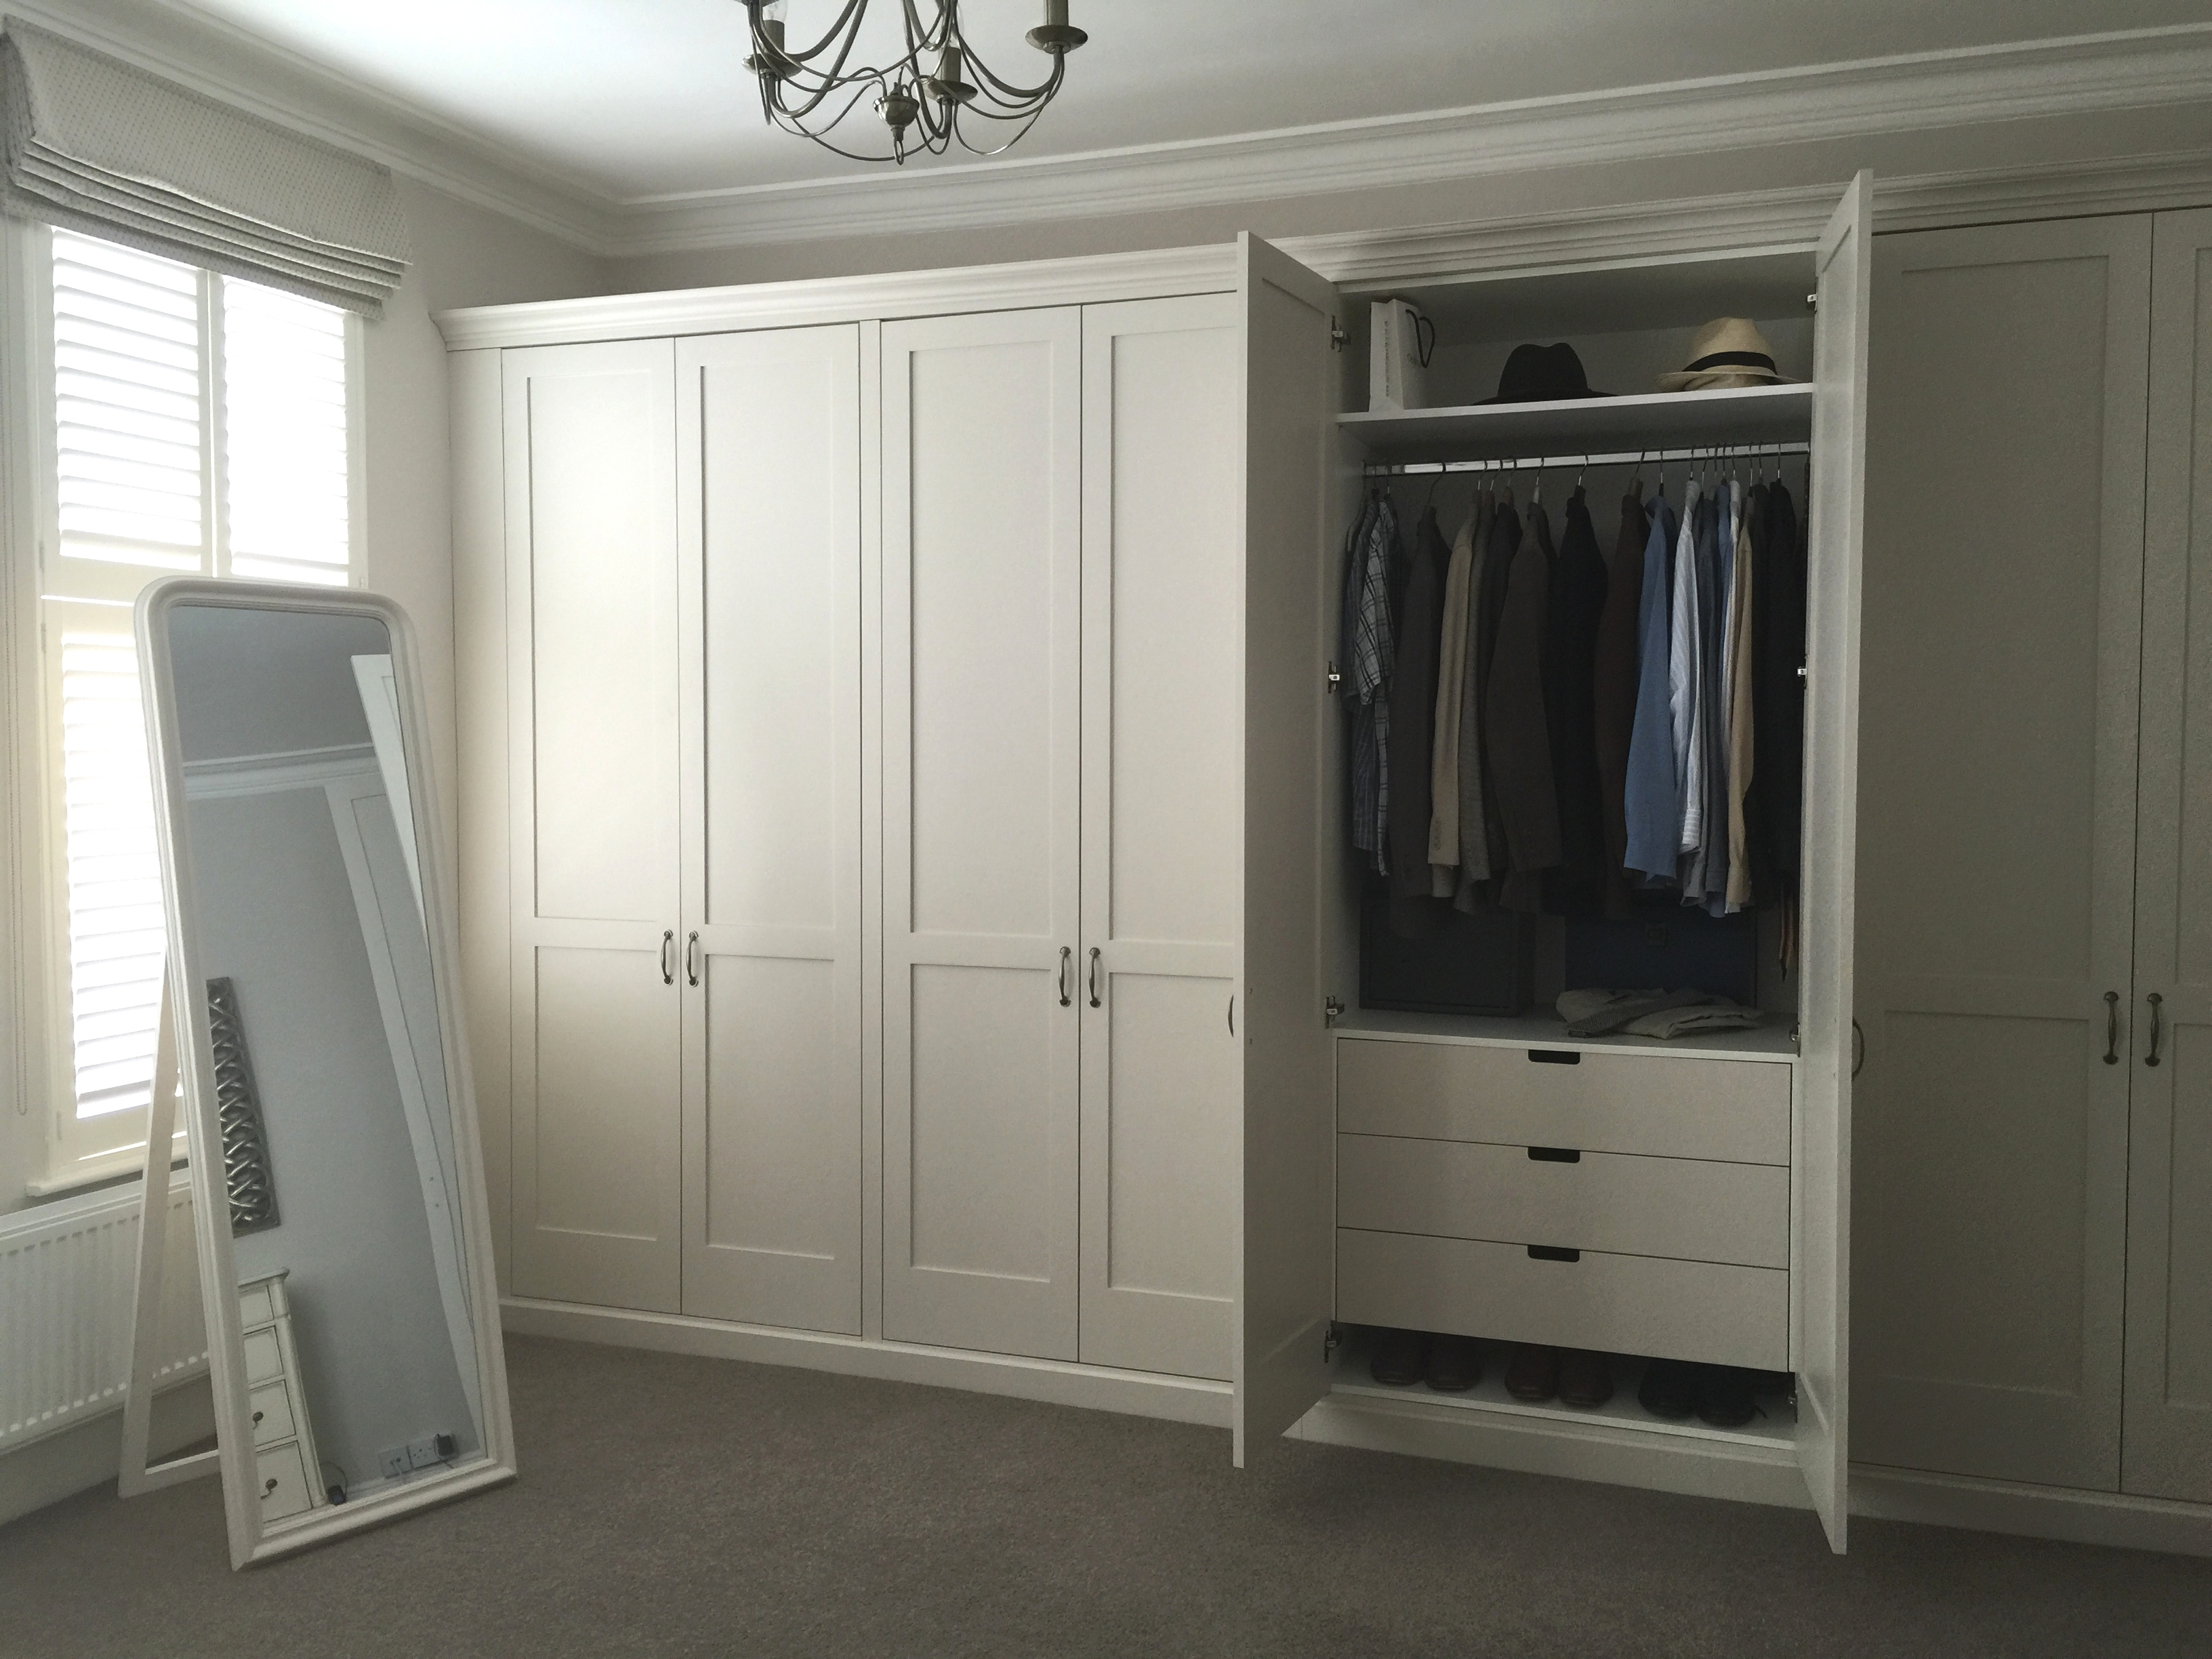 Traditional Shaker Wardrobes With Drawers Inside Shelves And Throughout Wardrobe With Drawers And Shelves (Image 12 of 15)